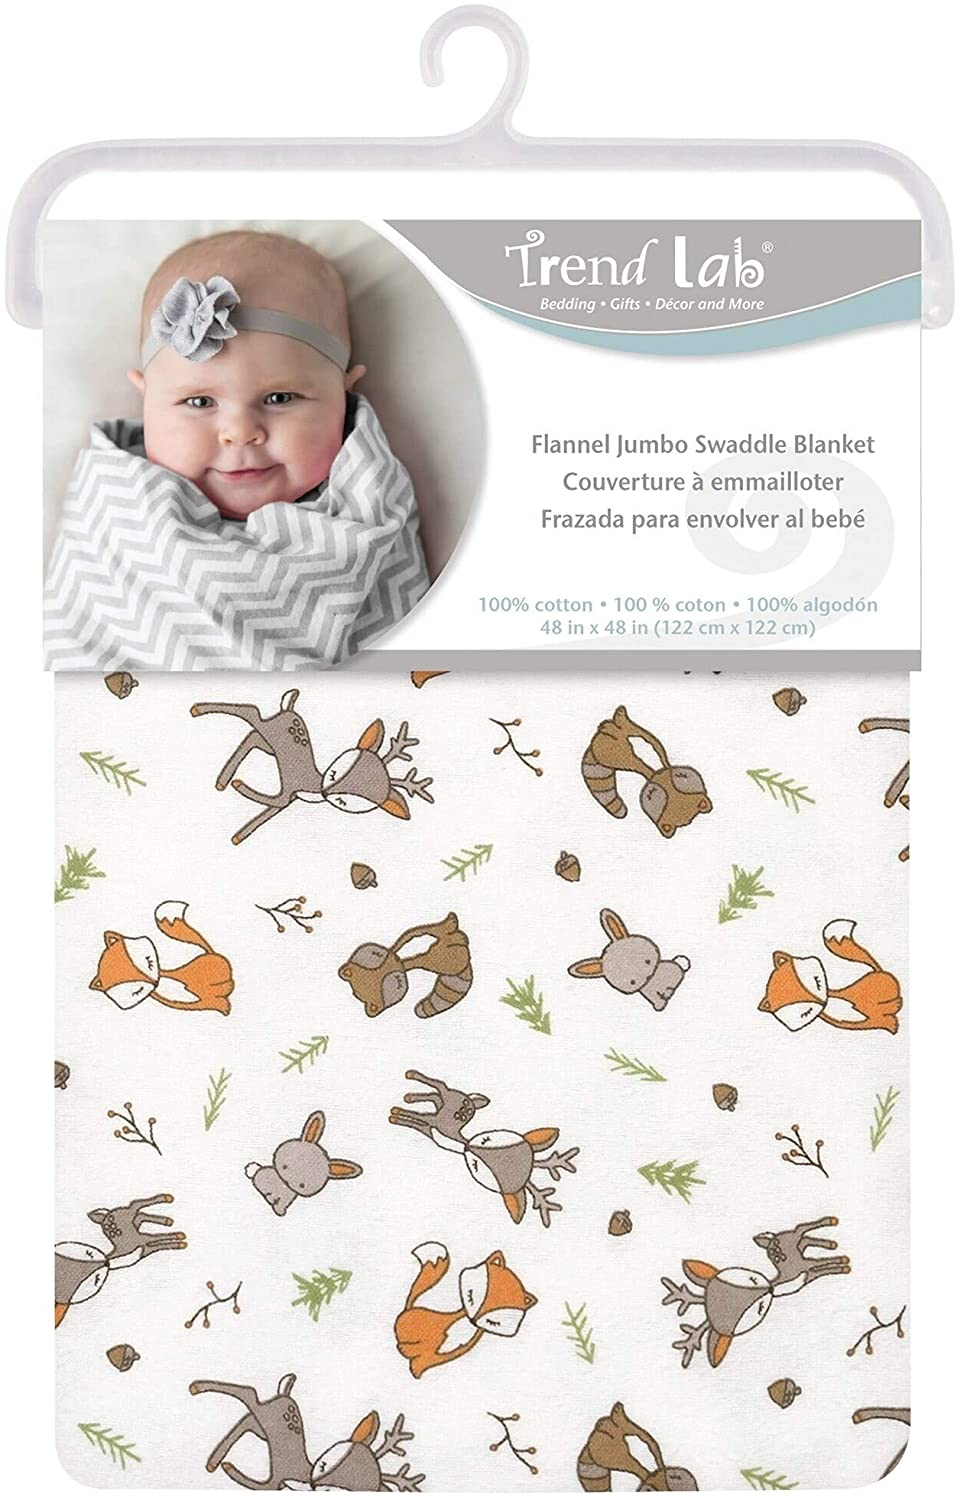 Forest Nap Jumbo Deluxe Flannel Swaddle Blanket Multi Color Animal Print Neutral Woodland Cotton